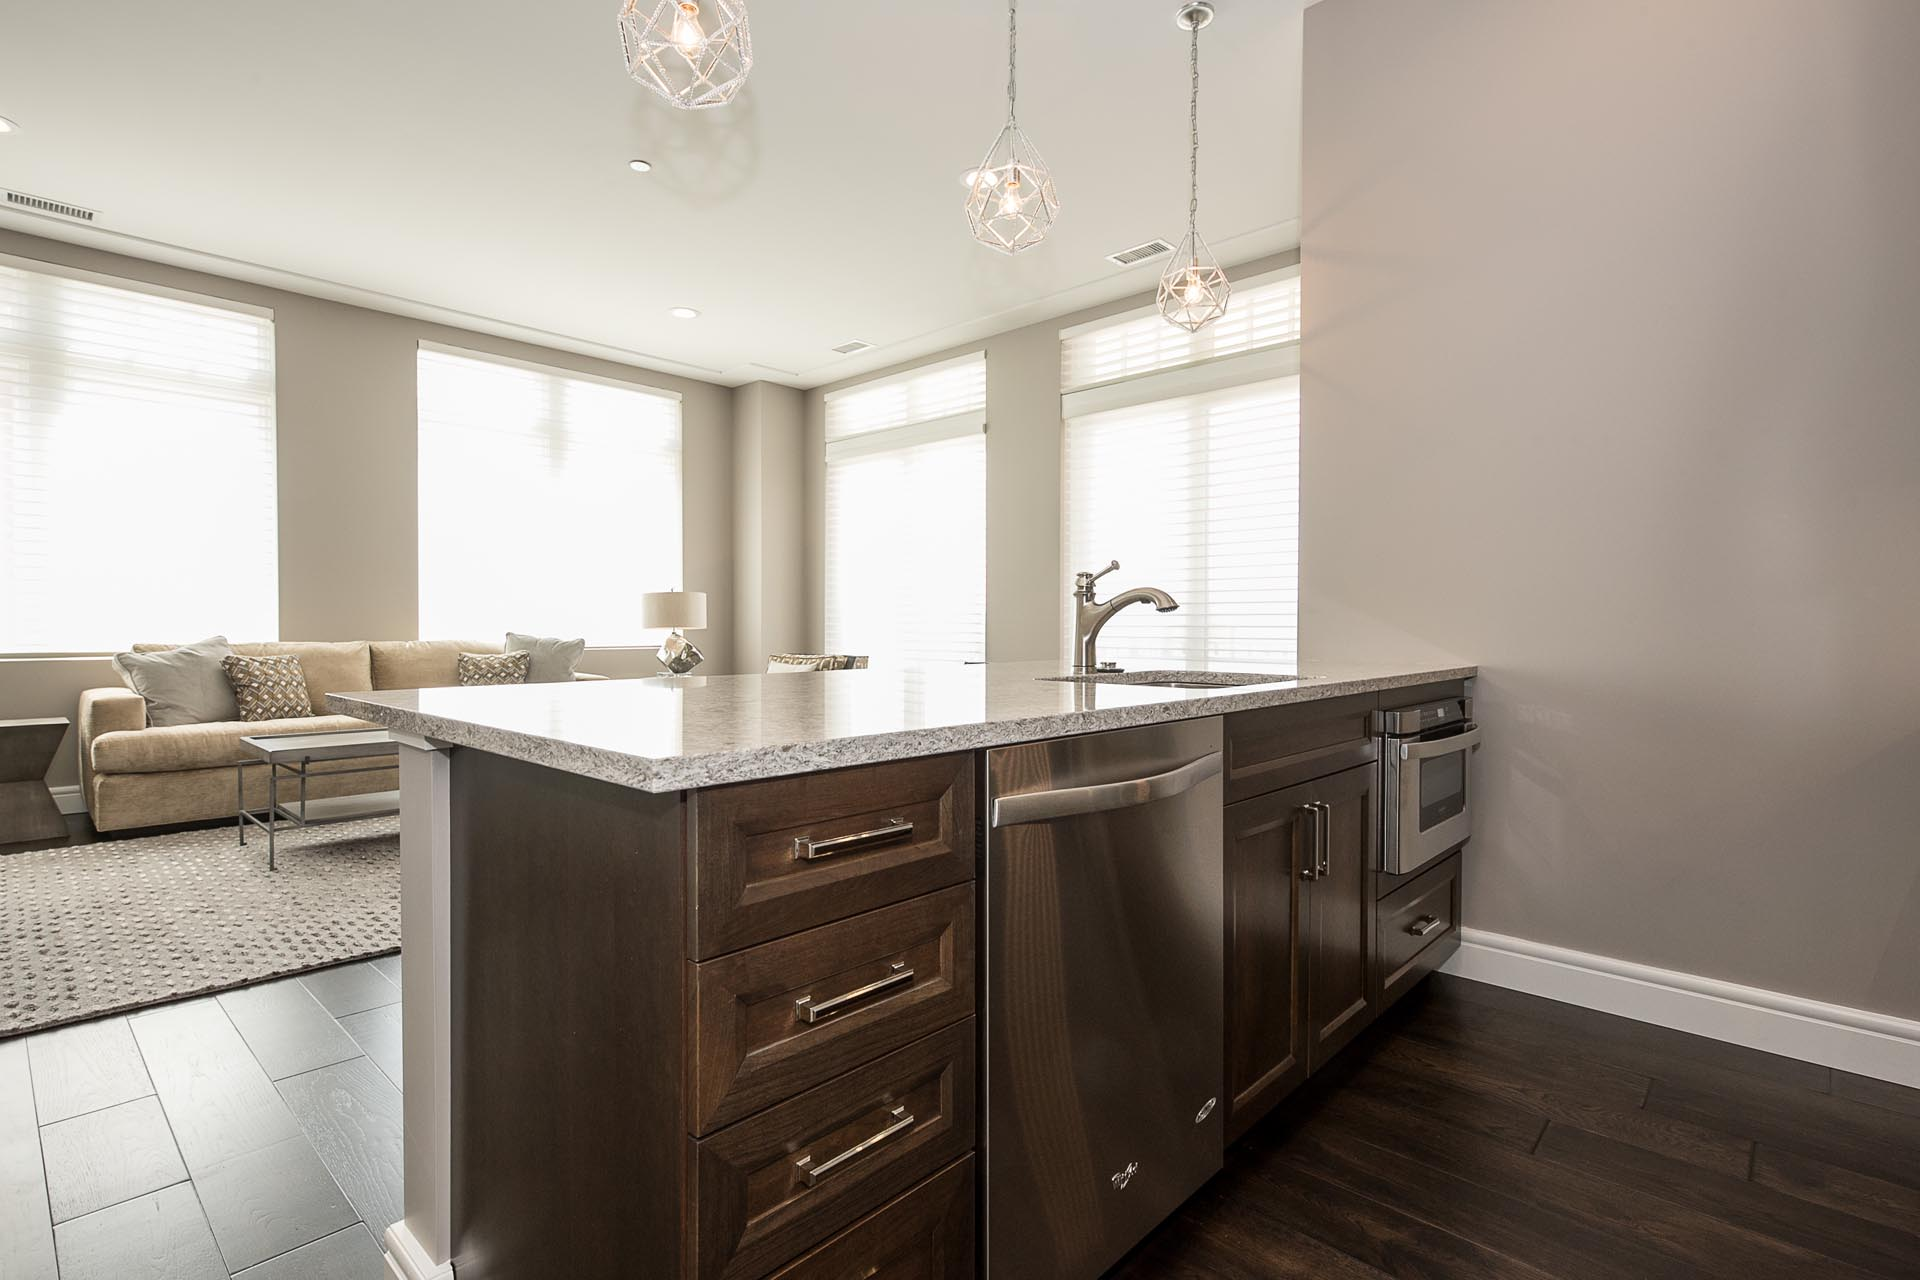 Kitchen Sink and Faucet | H Residence | Midland, MI